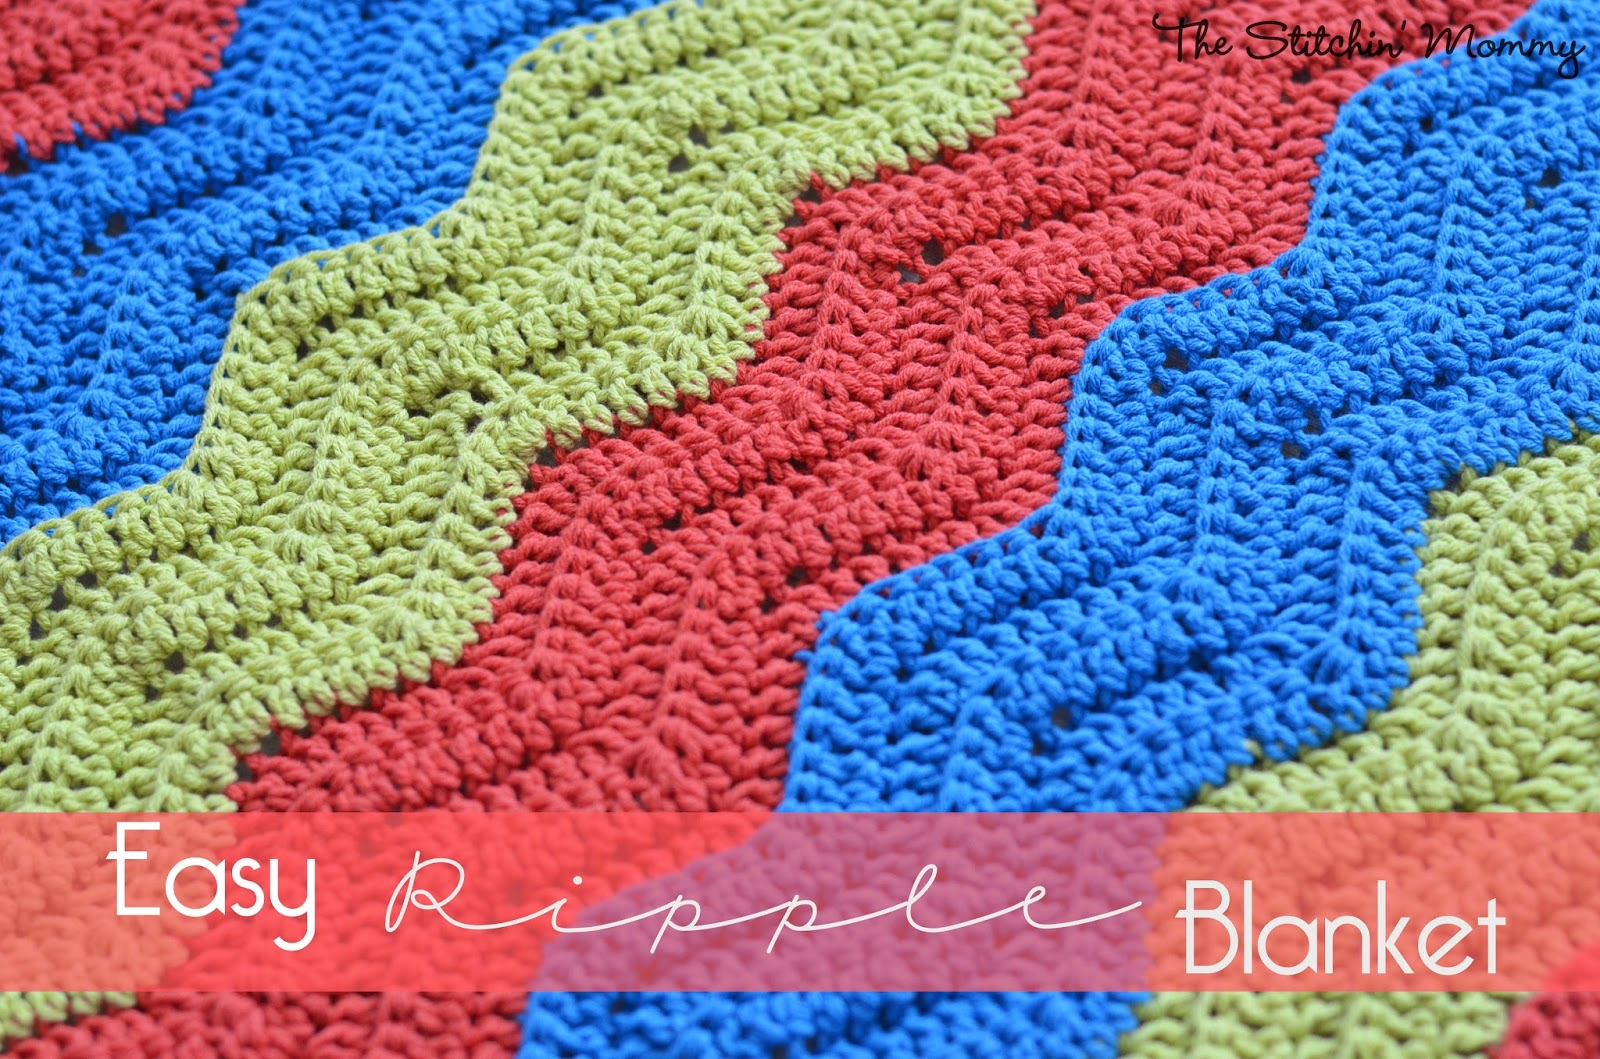 Free Pattern For Single Crochet Ripple Afghan : Easy Crochet Ripple Blanket - The Stitchin Mommy